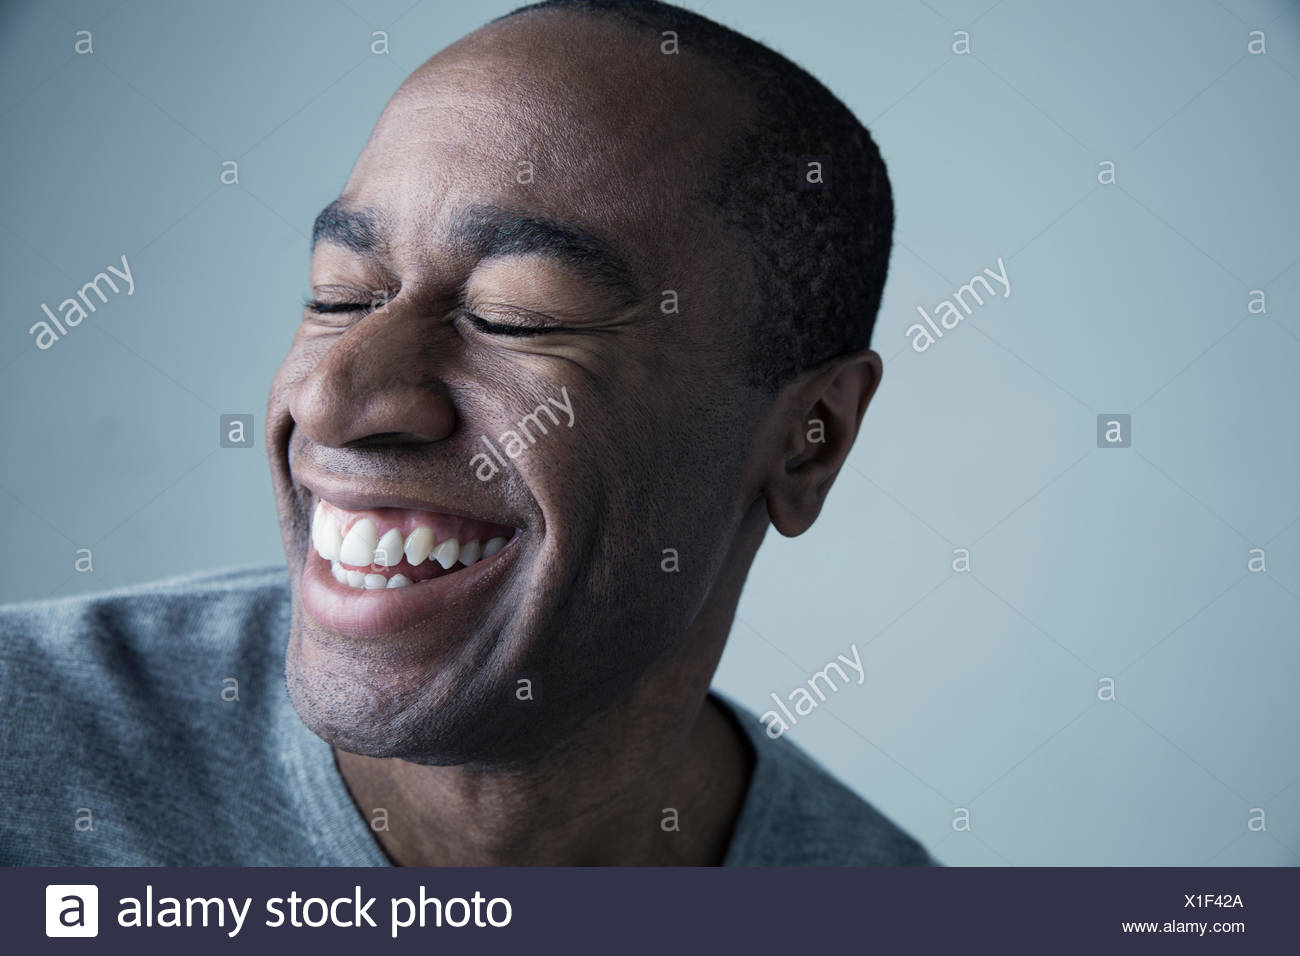 Portrait African American man smiling with eyes closed - Stock Image